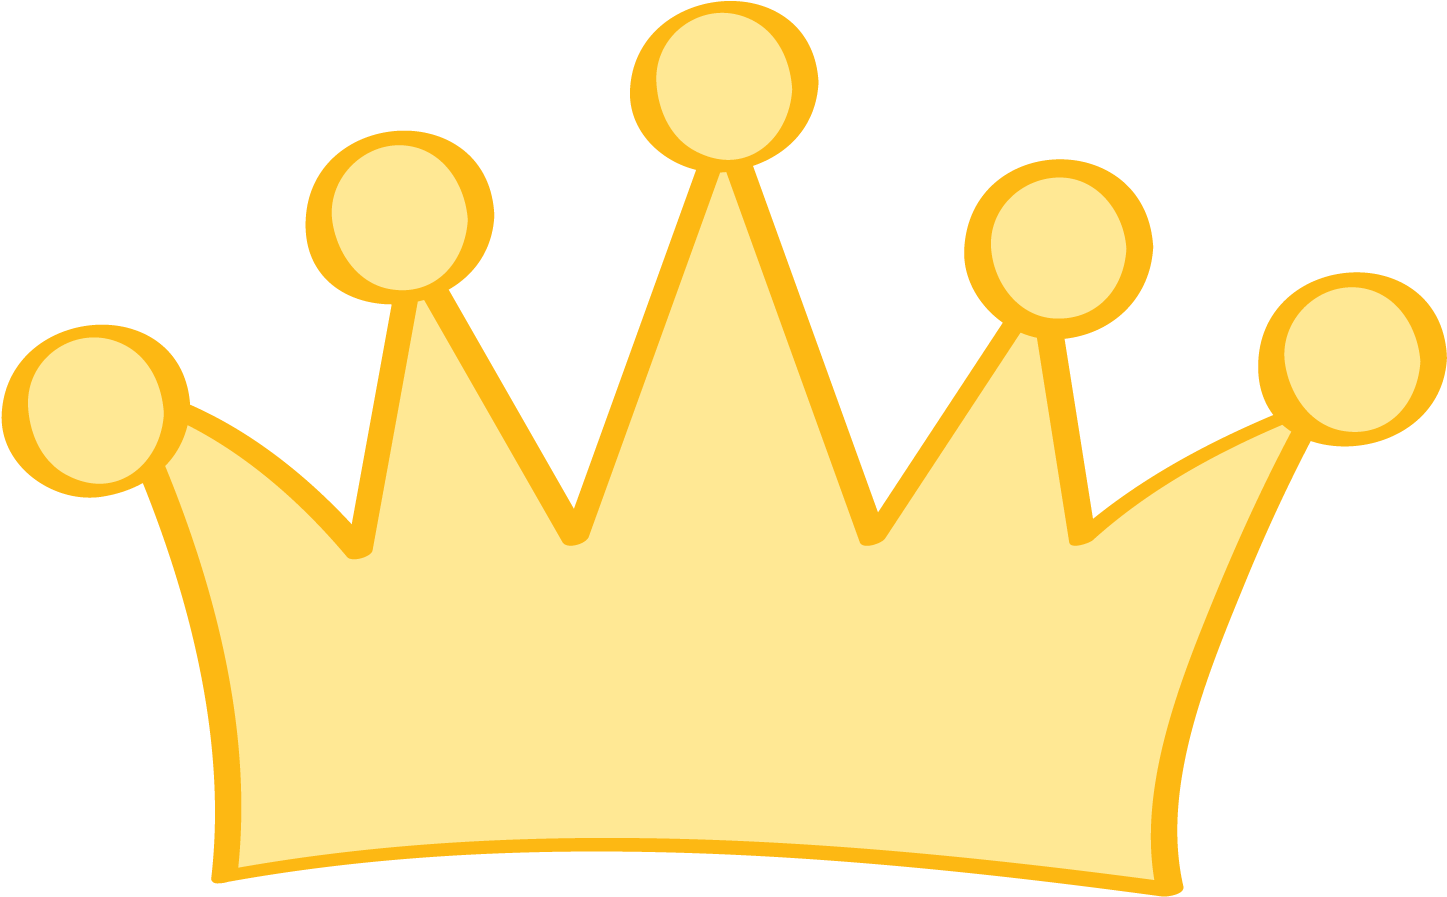 Em clipart clip royalty free Coroa Do Pequeno Principe Em Png Crown Clipart - Clip Art Library clip royalty free